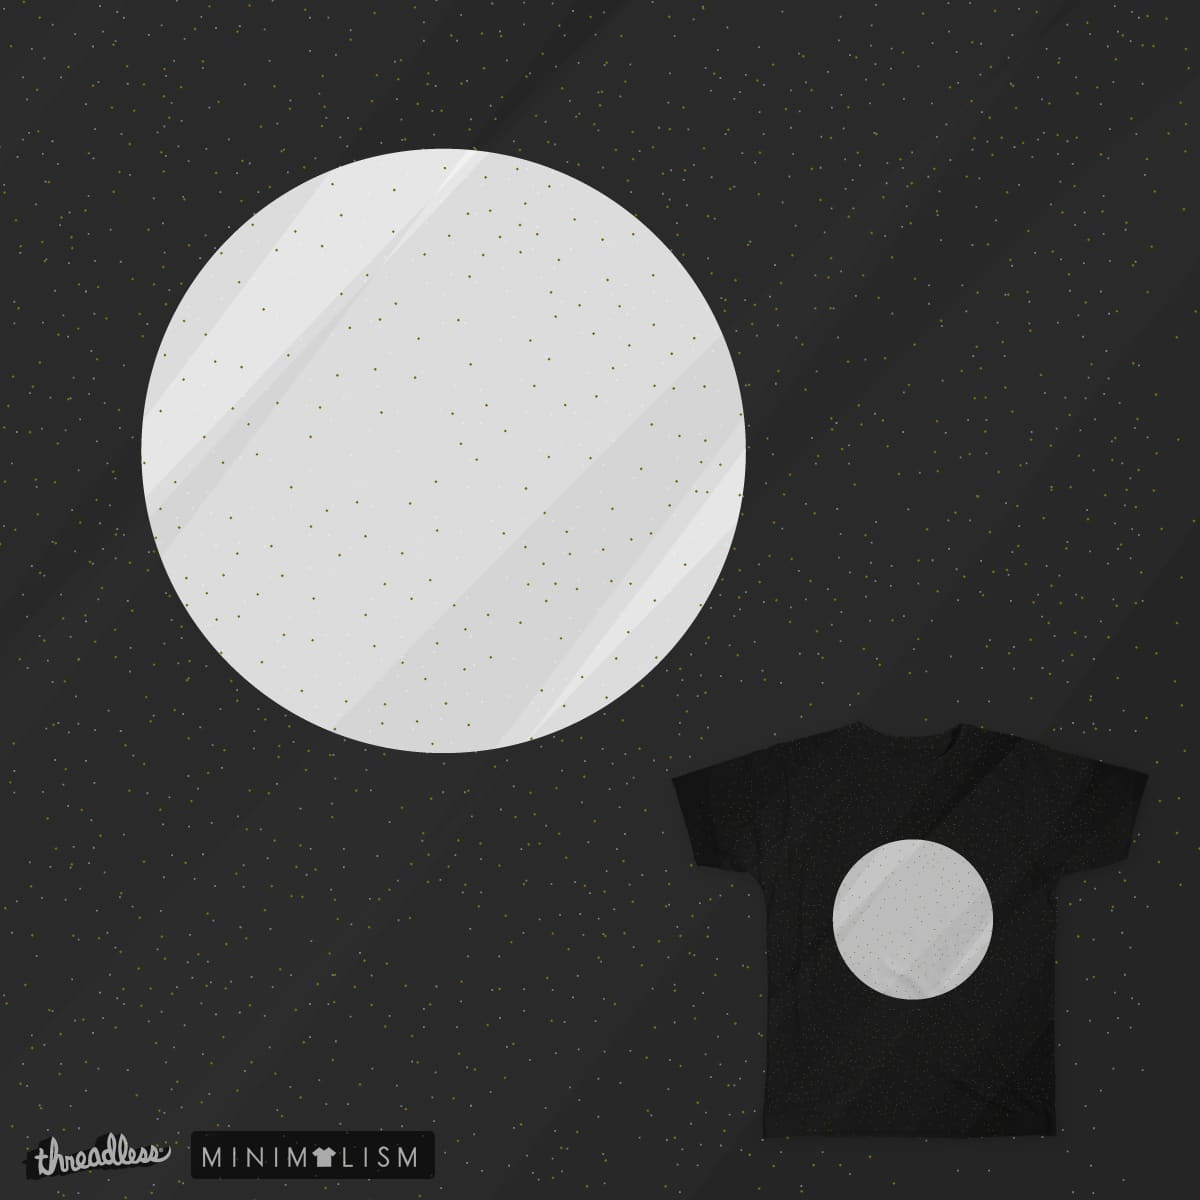 Moon Minimal by Kira_Seiler on Threadless